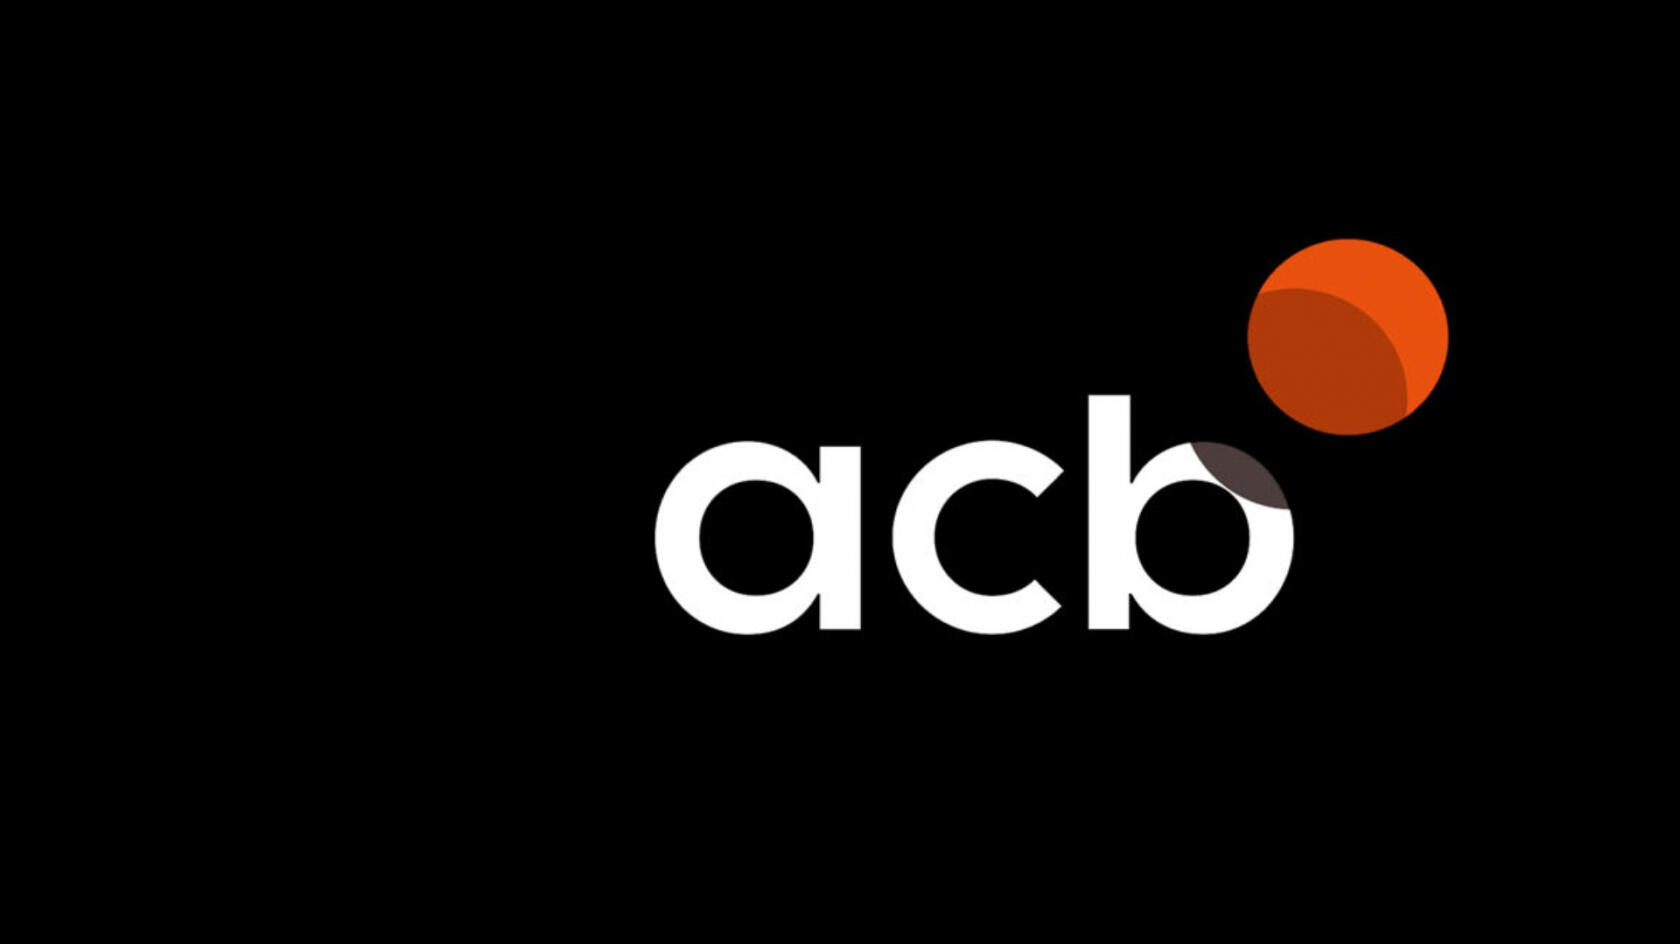 acb Oficial Statement